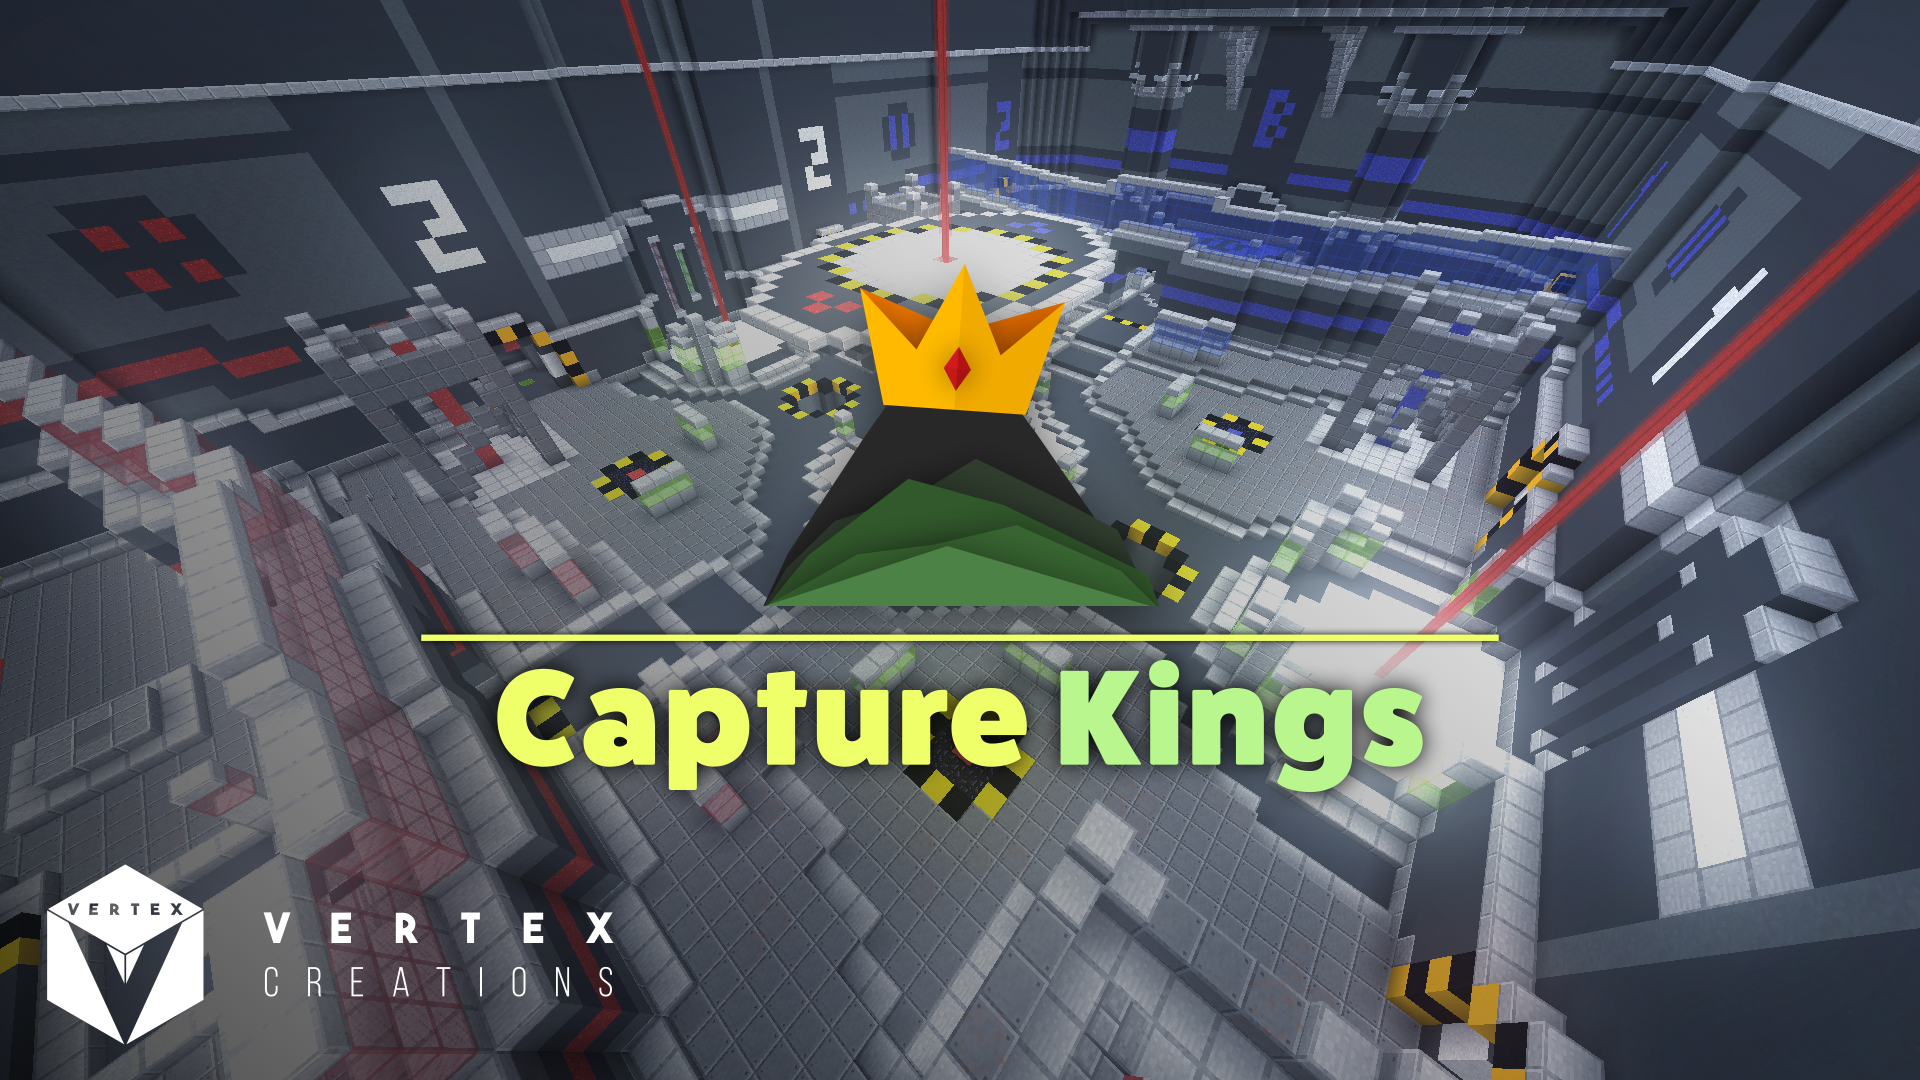 Capture Kings